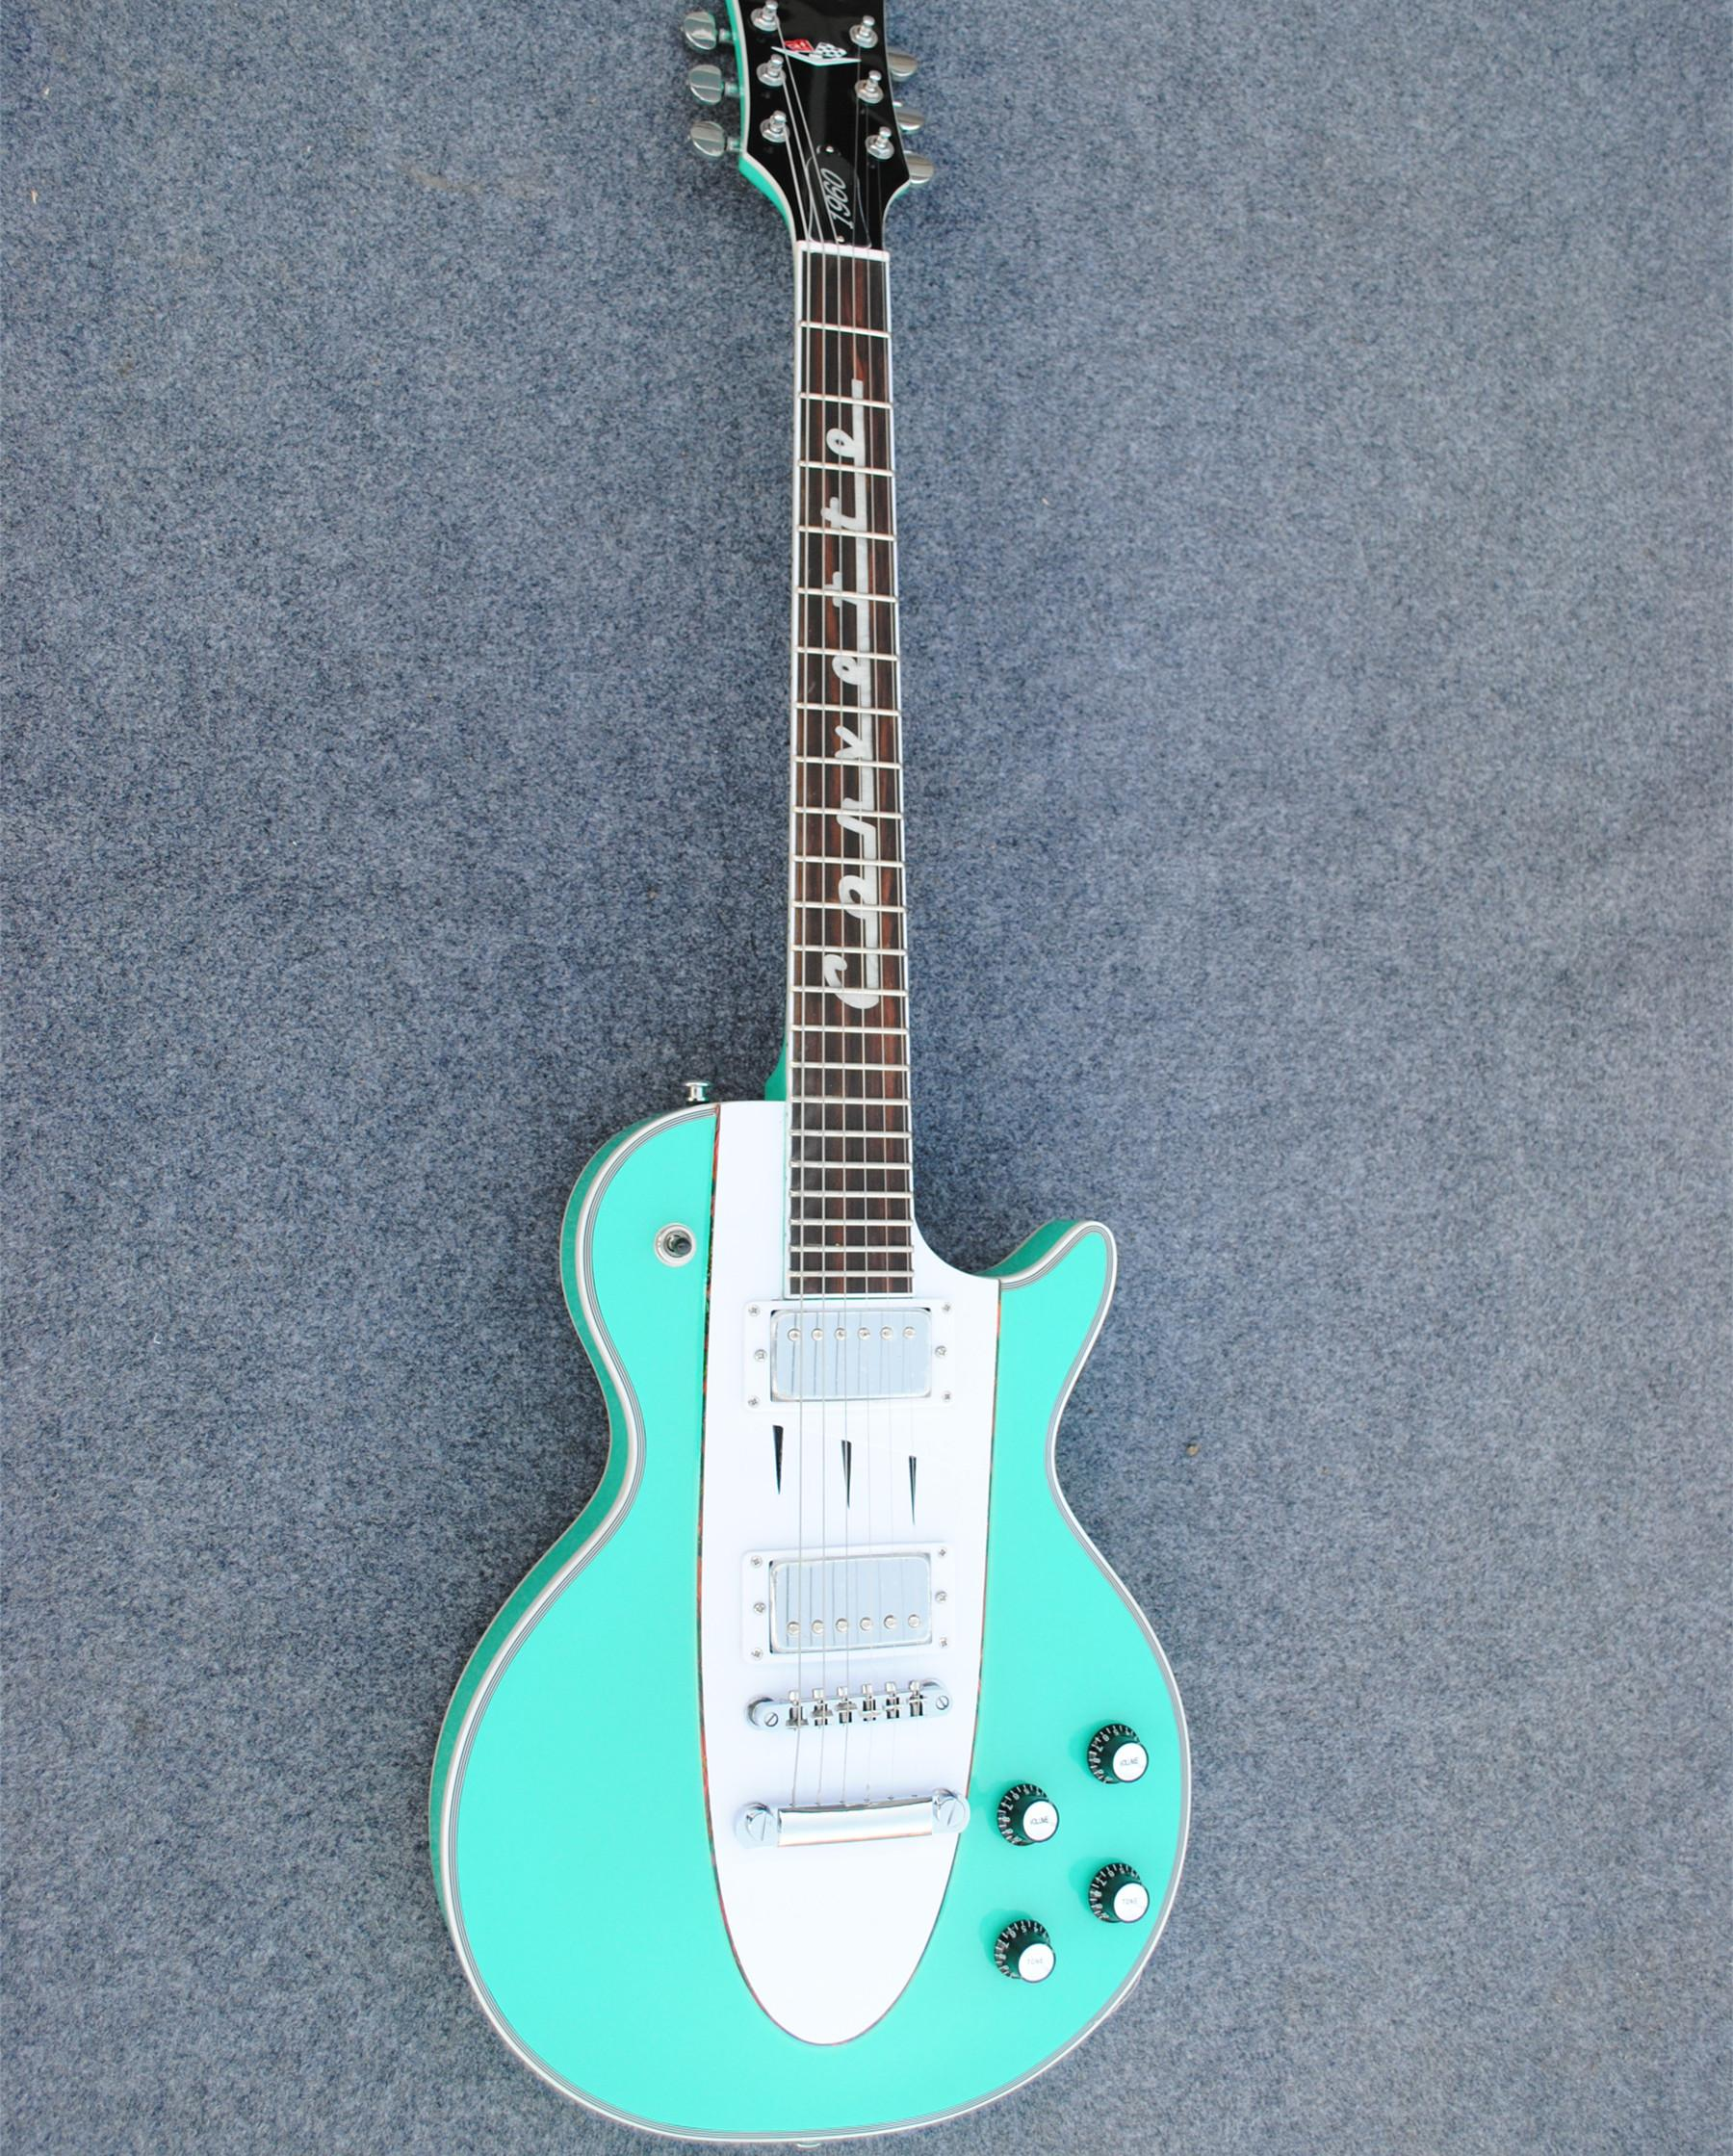 Personal Tailor Light Blue Electric Guitar Rosewood Fingerboard